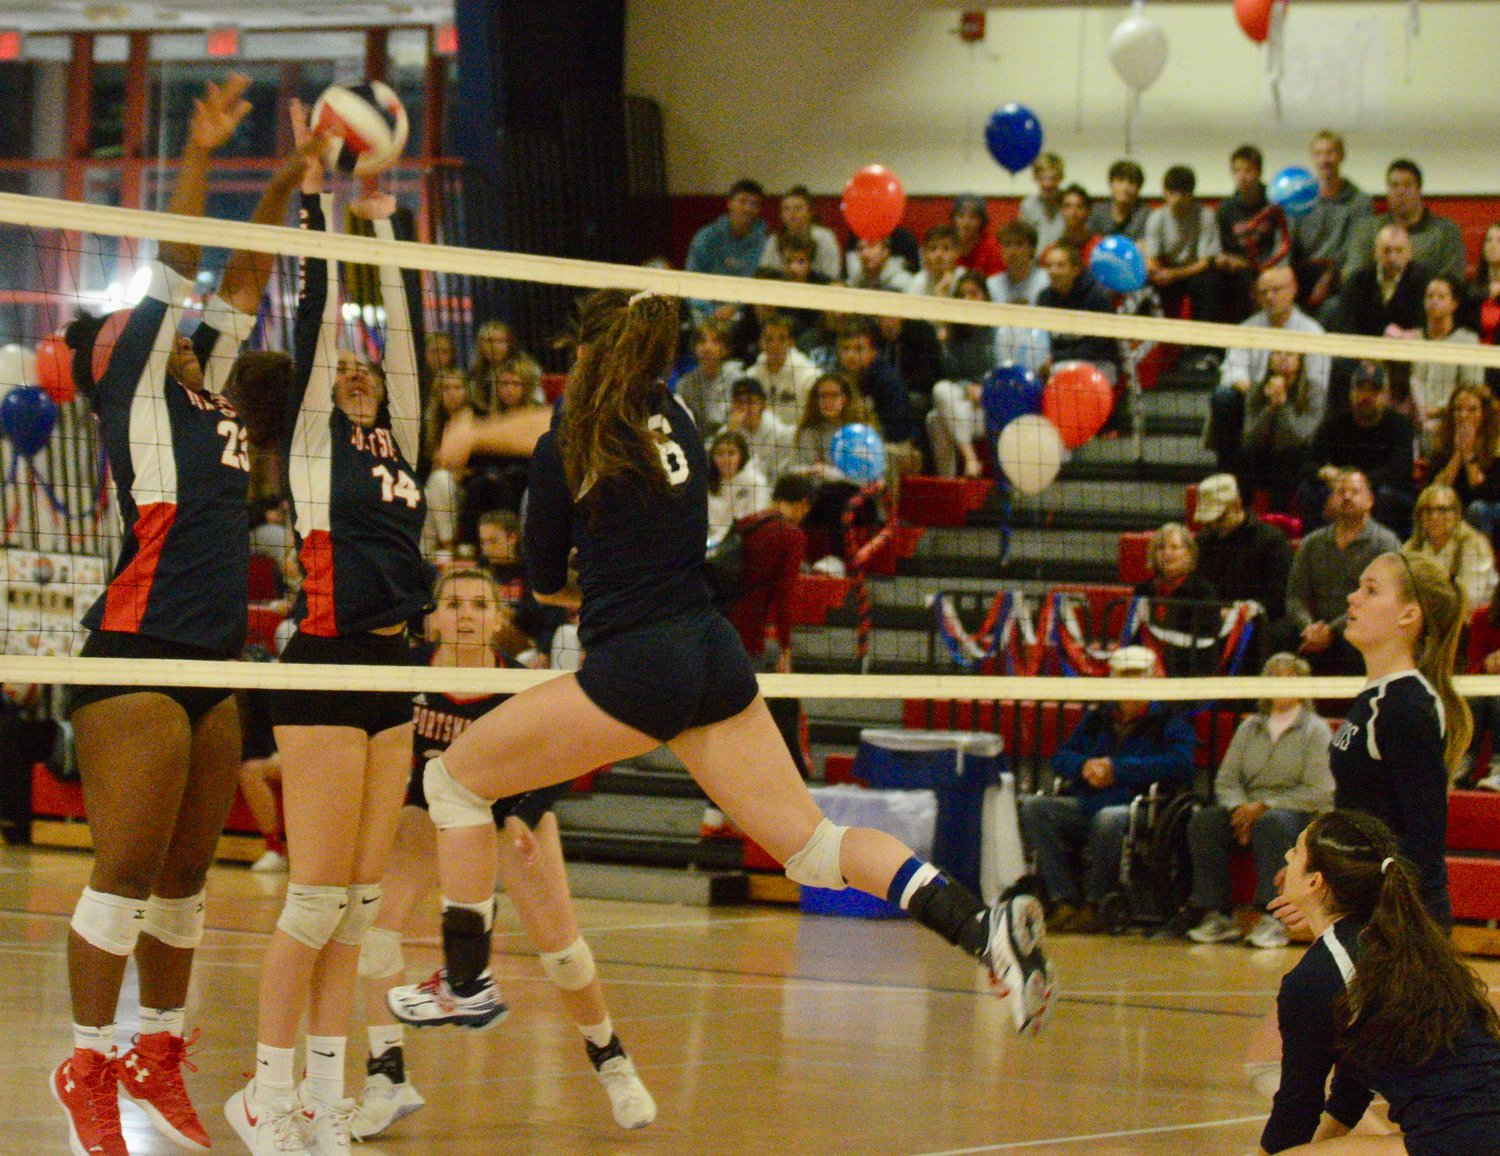 Gabby Bryan (left) and Jill Lunney go up for the block against Burrillville.